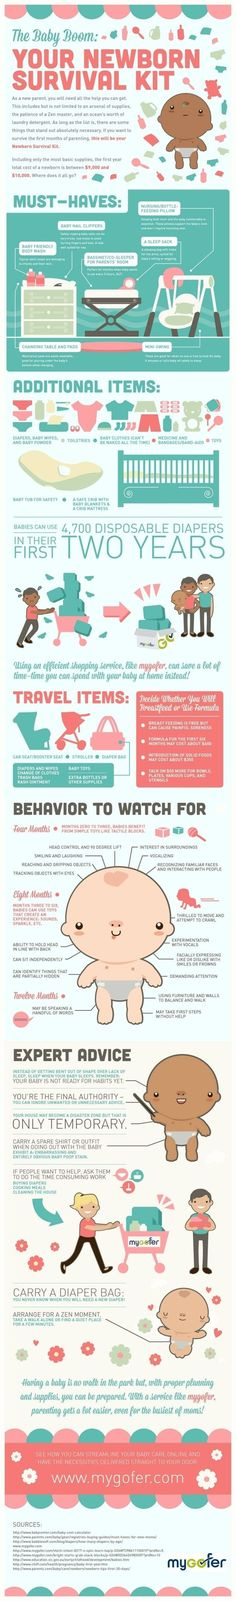 Newborn survival guide infographic